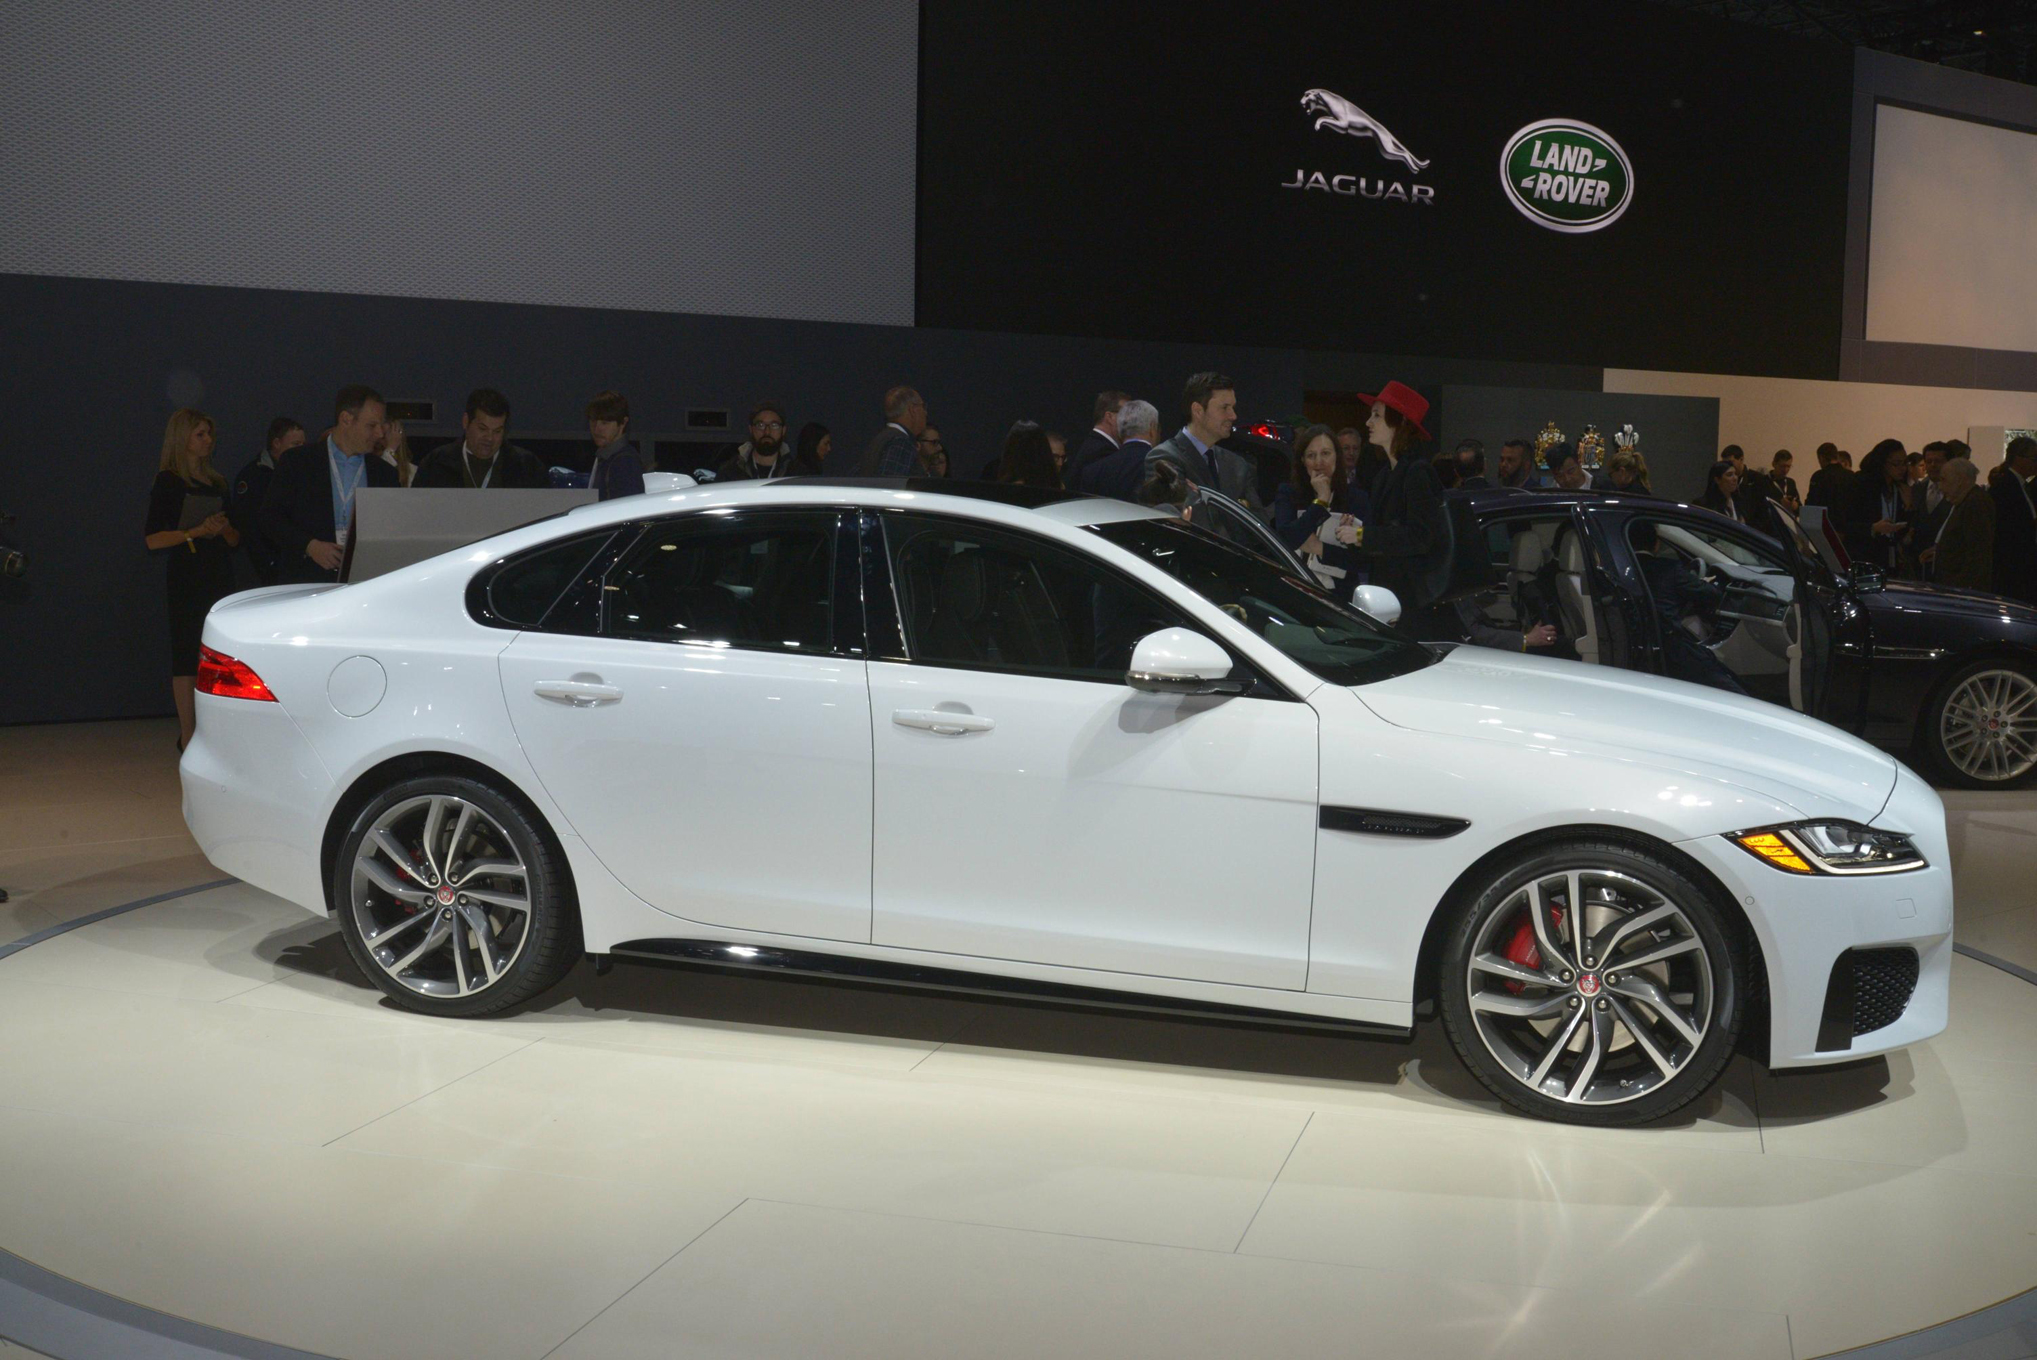 2016 jaguar xf first look [ 2037 x 1360 Pixel ]